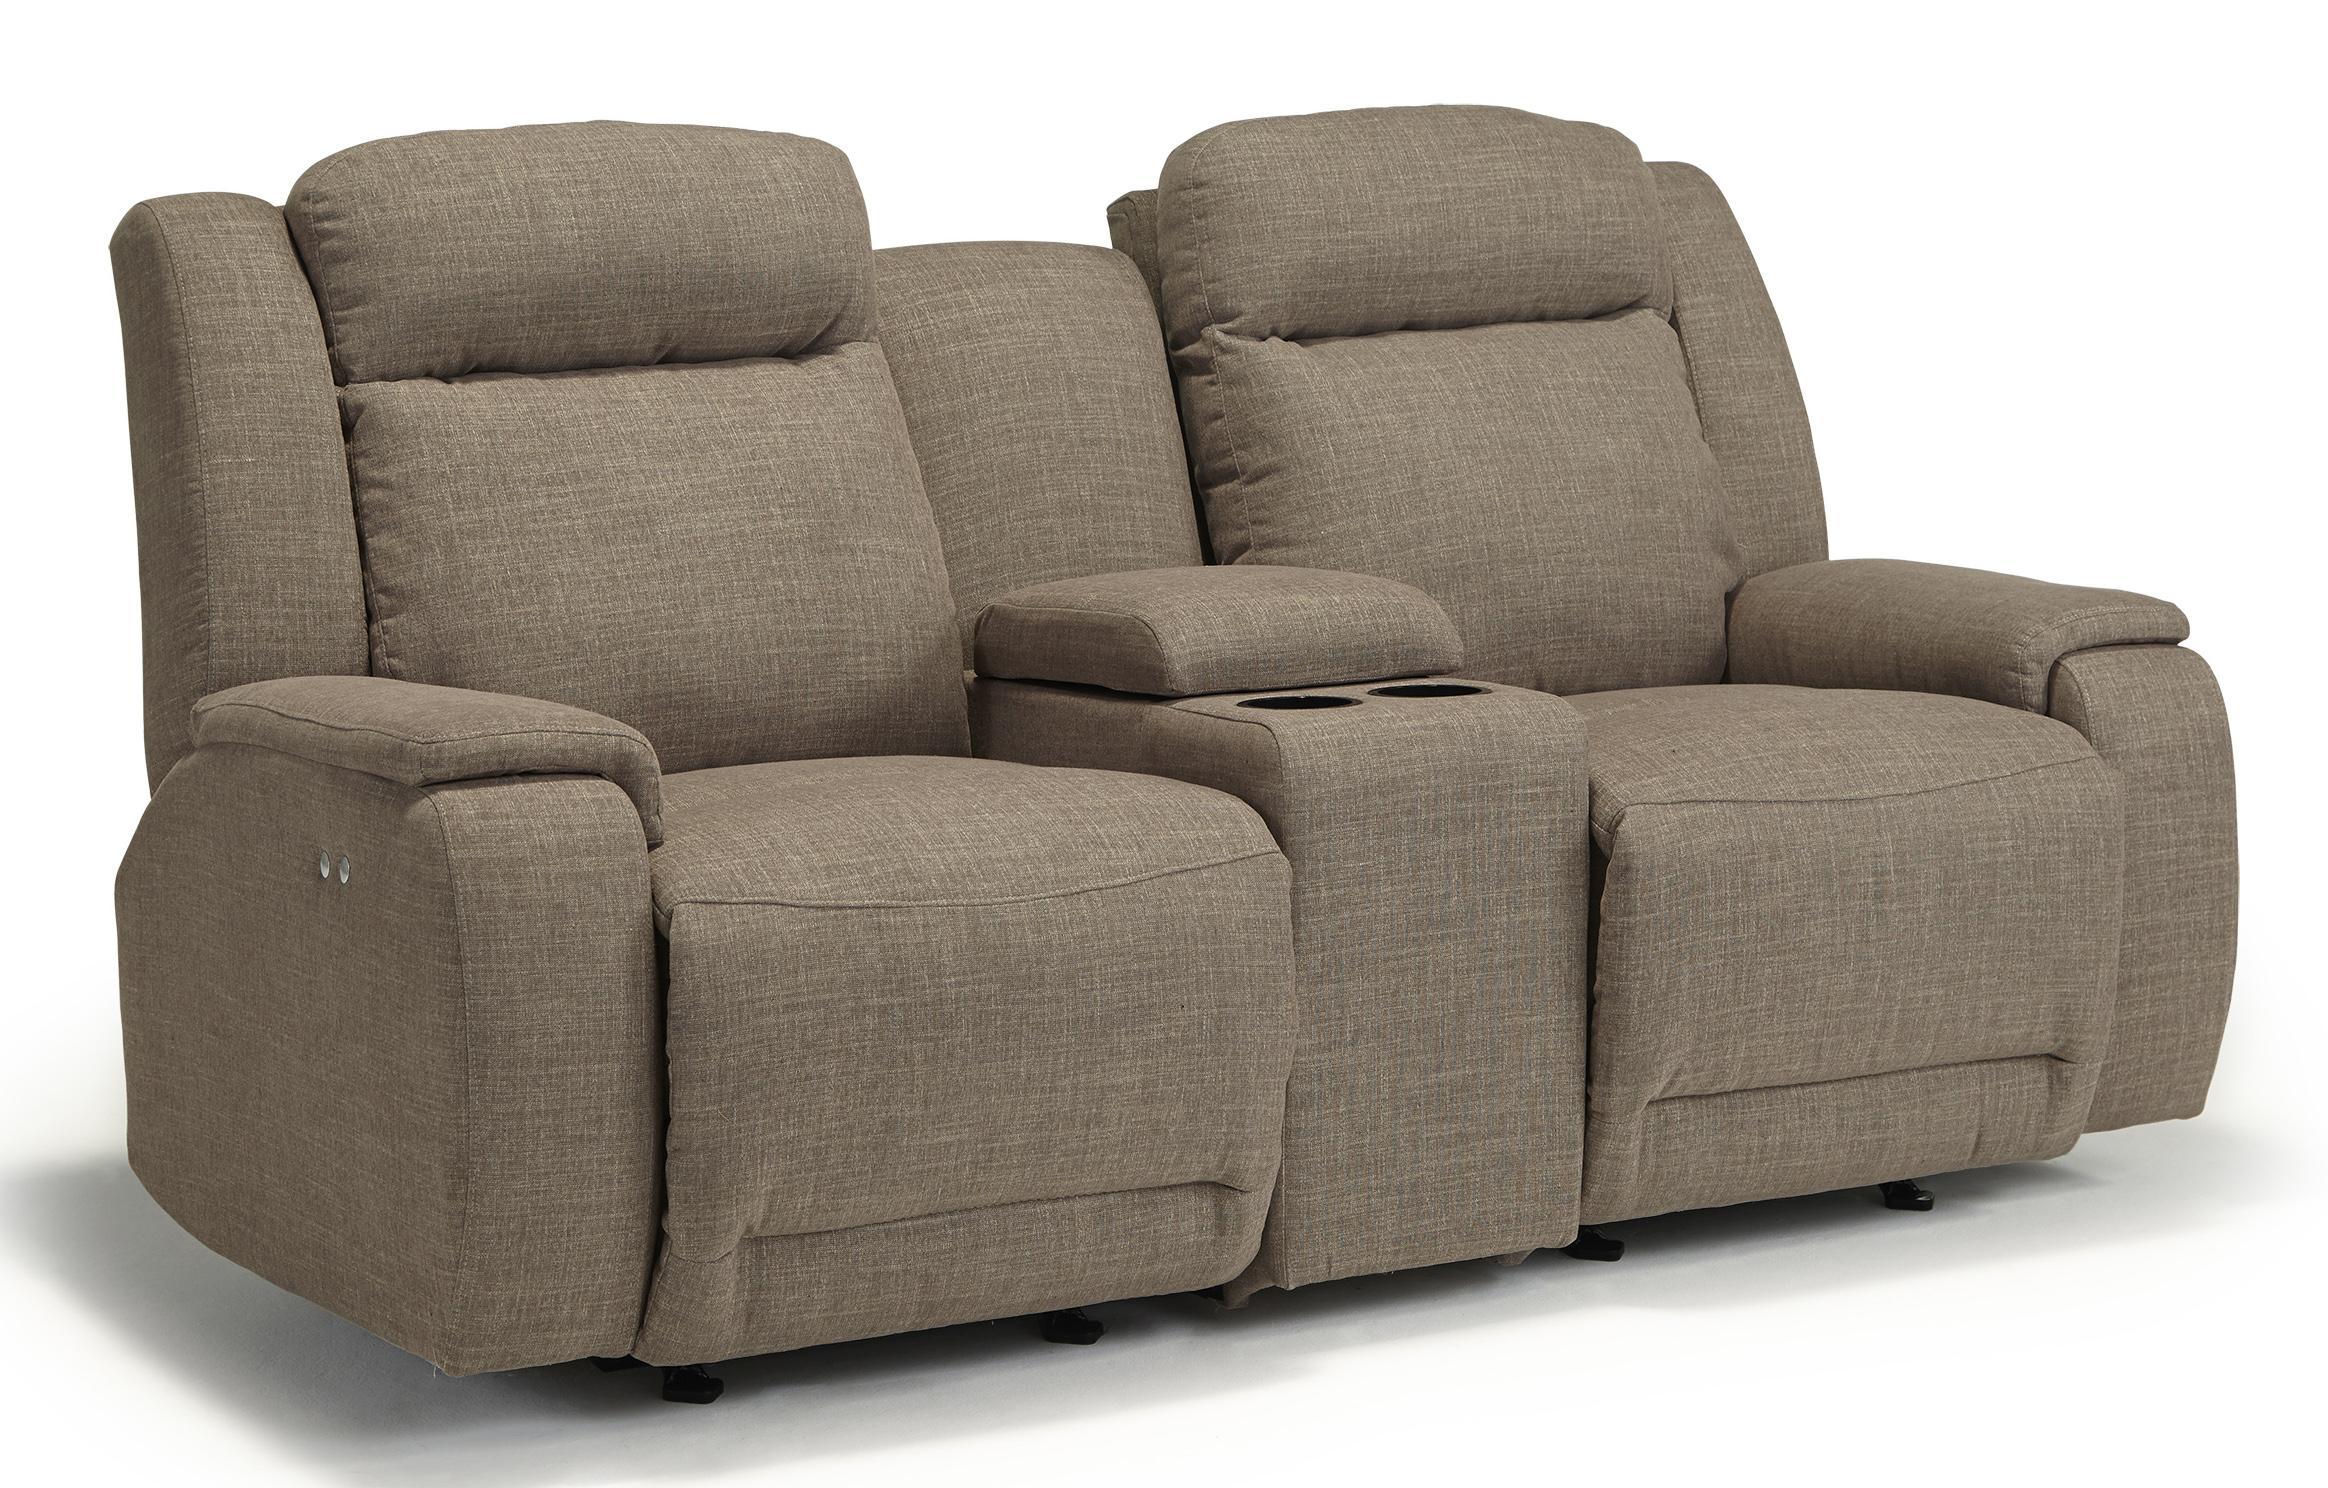 Rocking Loveseat With Console ~ Rocking reclining loveseat with cupholder and storage